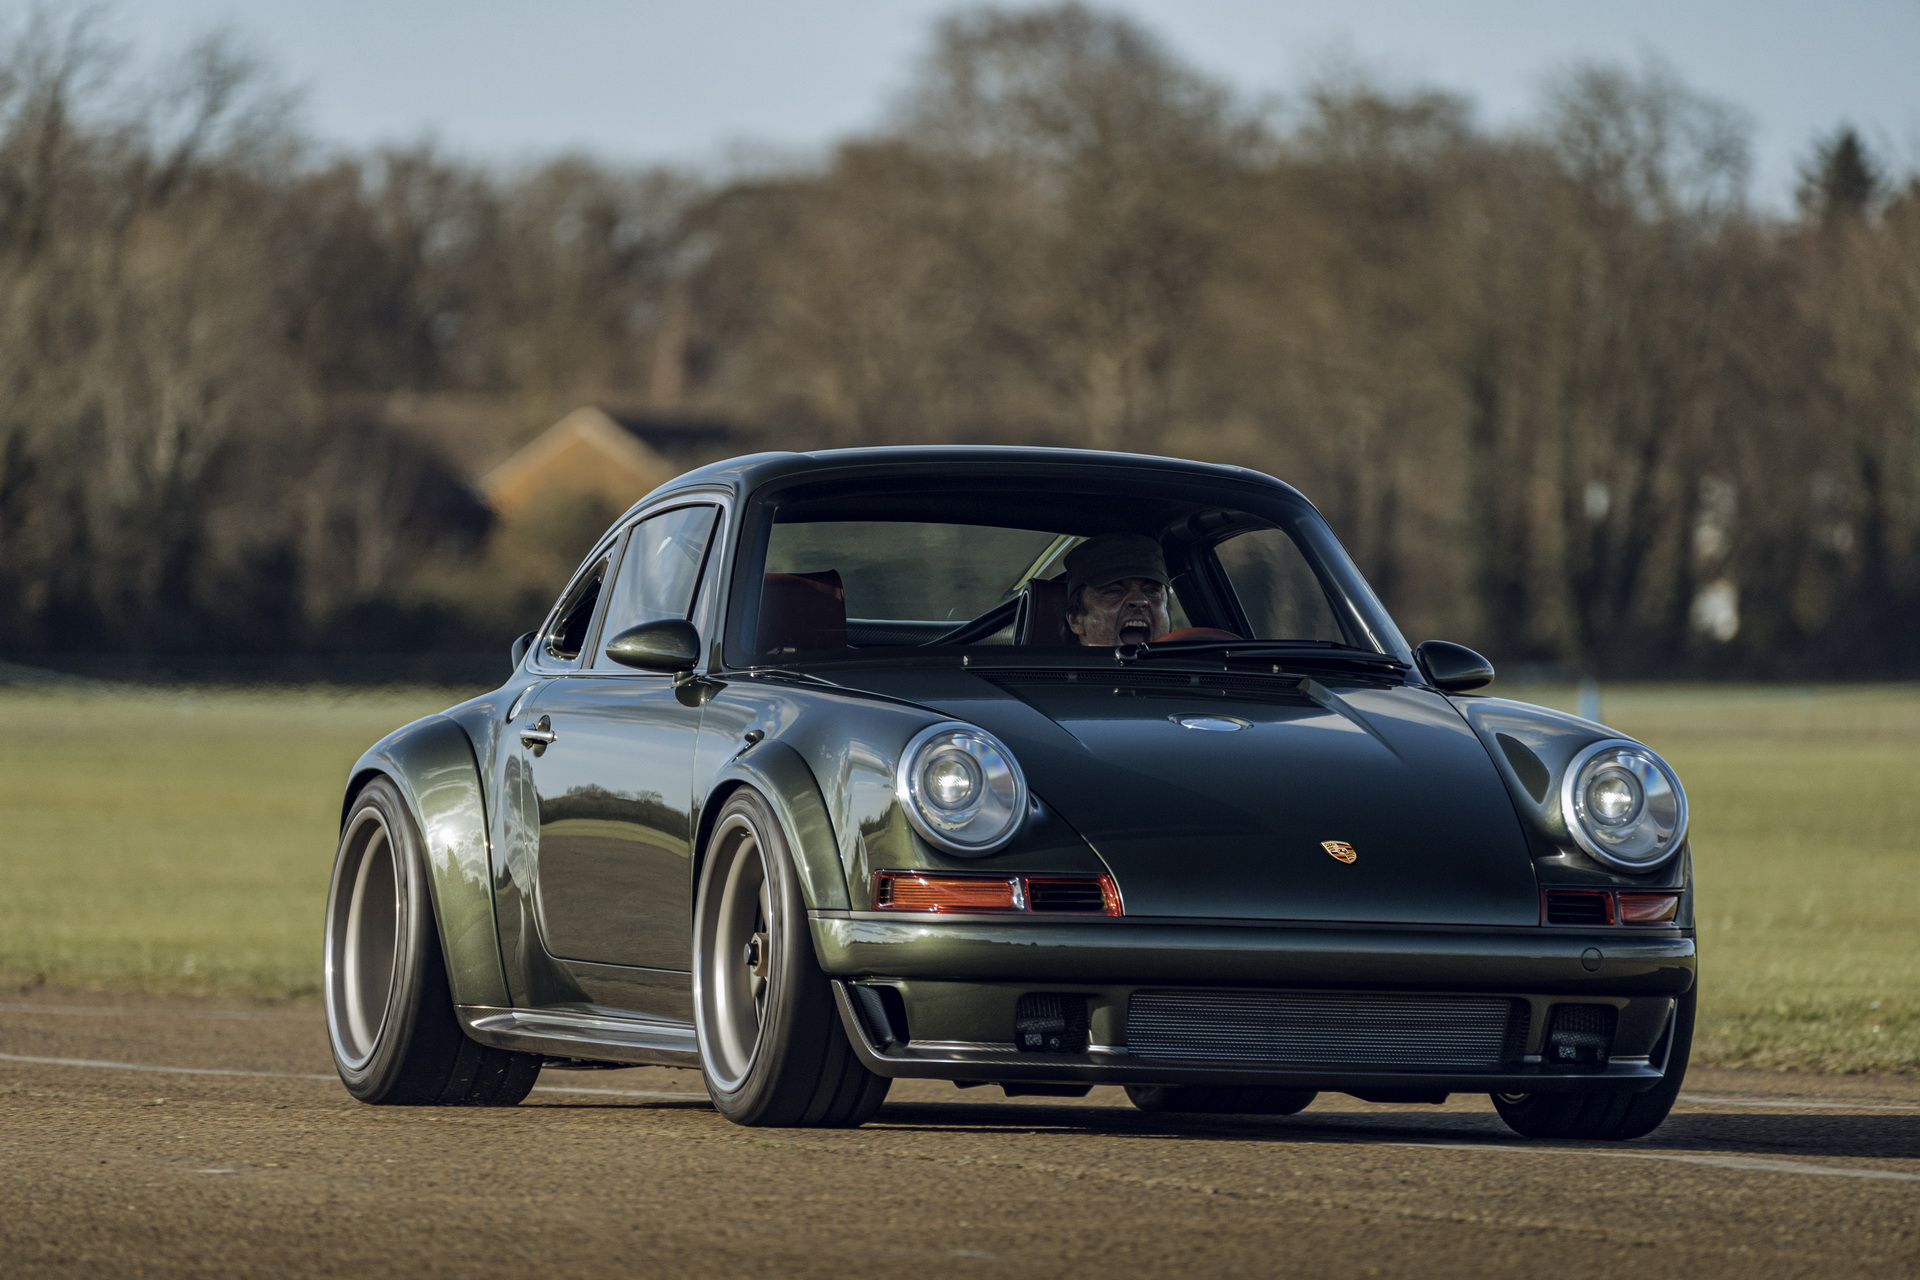 Singer Vehicle Design has wrapped up working on a 1989 Porsche 964, converting the sports coupe into the ultimate restomod. Singer Board Chairman Rob Dickinson himself test-drove the car and said it was 'a fantastic experience'.